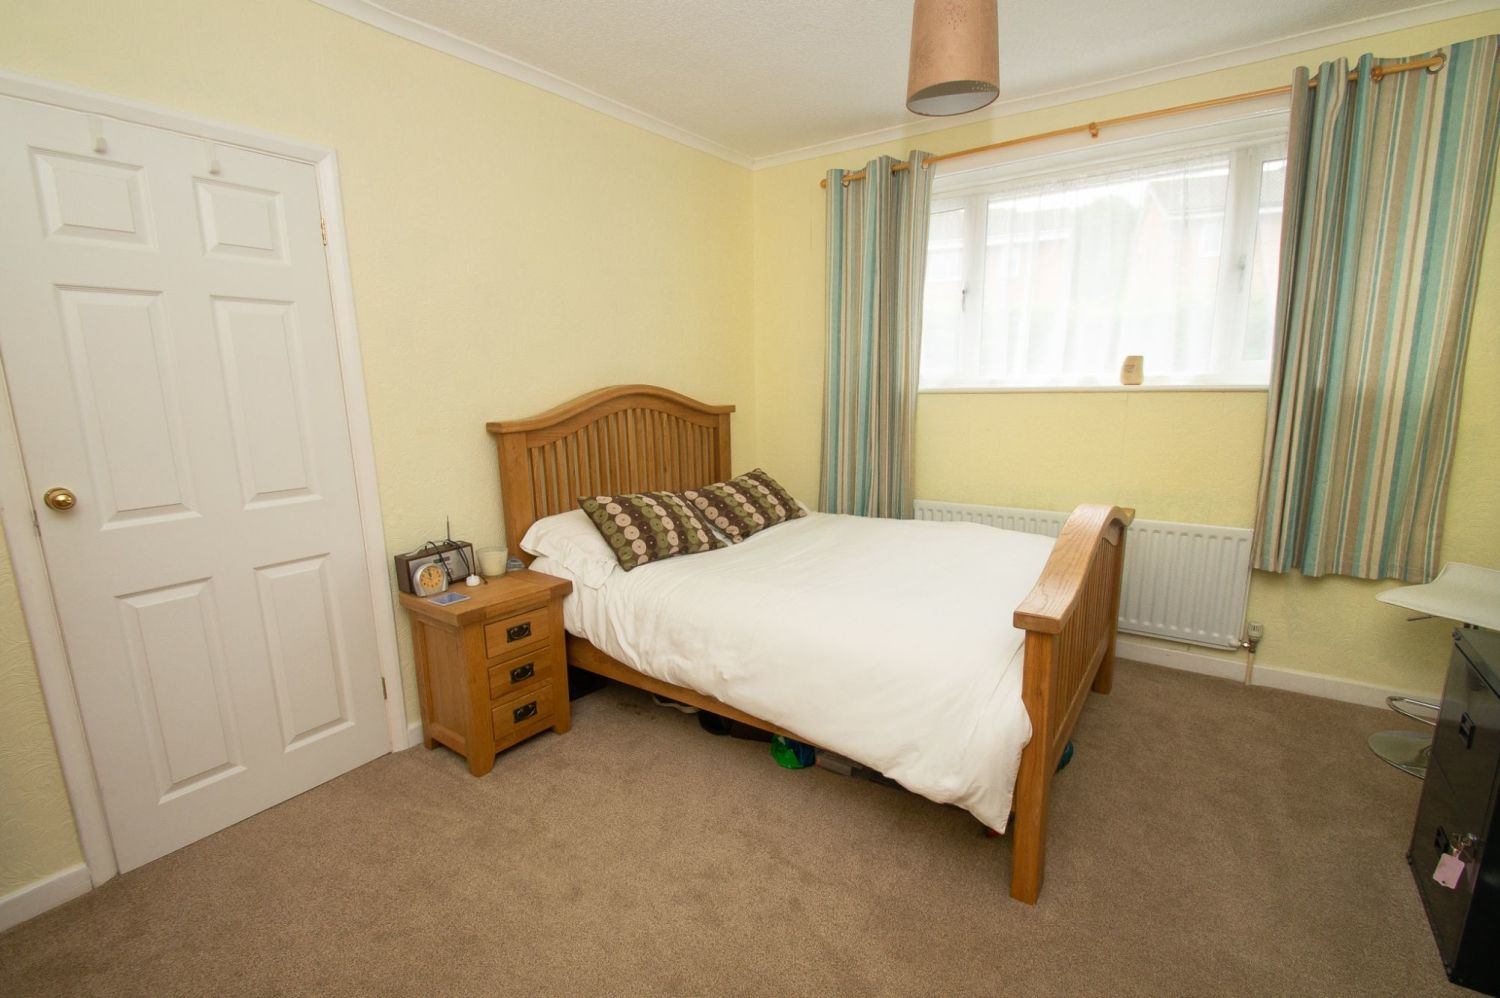 3 bed semi-detached for sale in Vicarage Crescent, Redditch 7